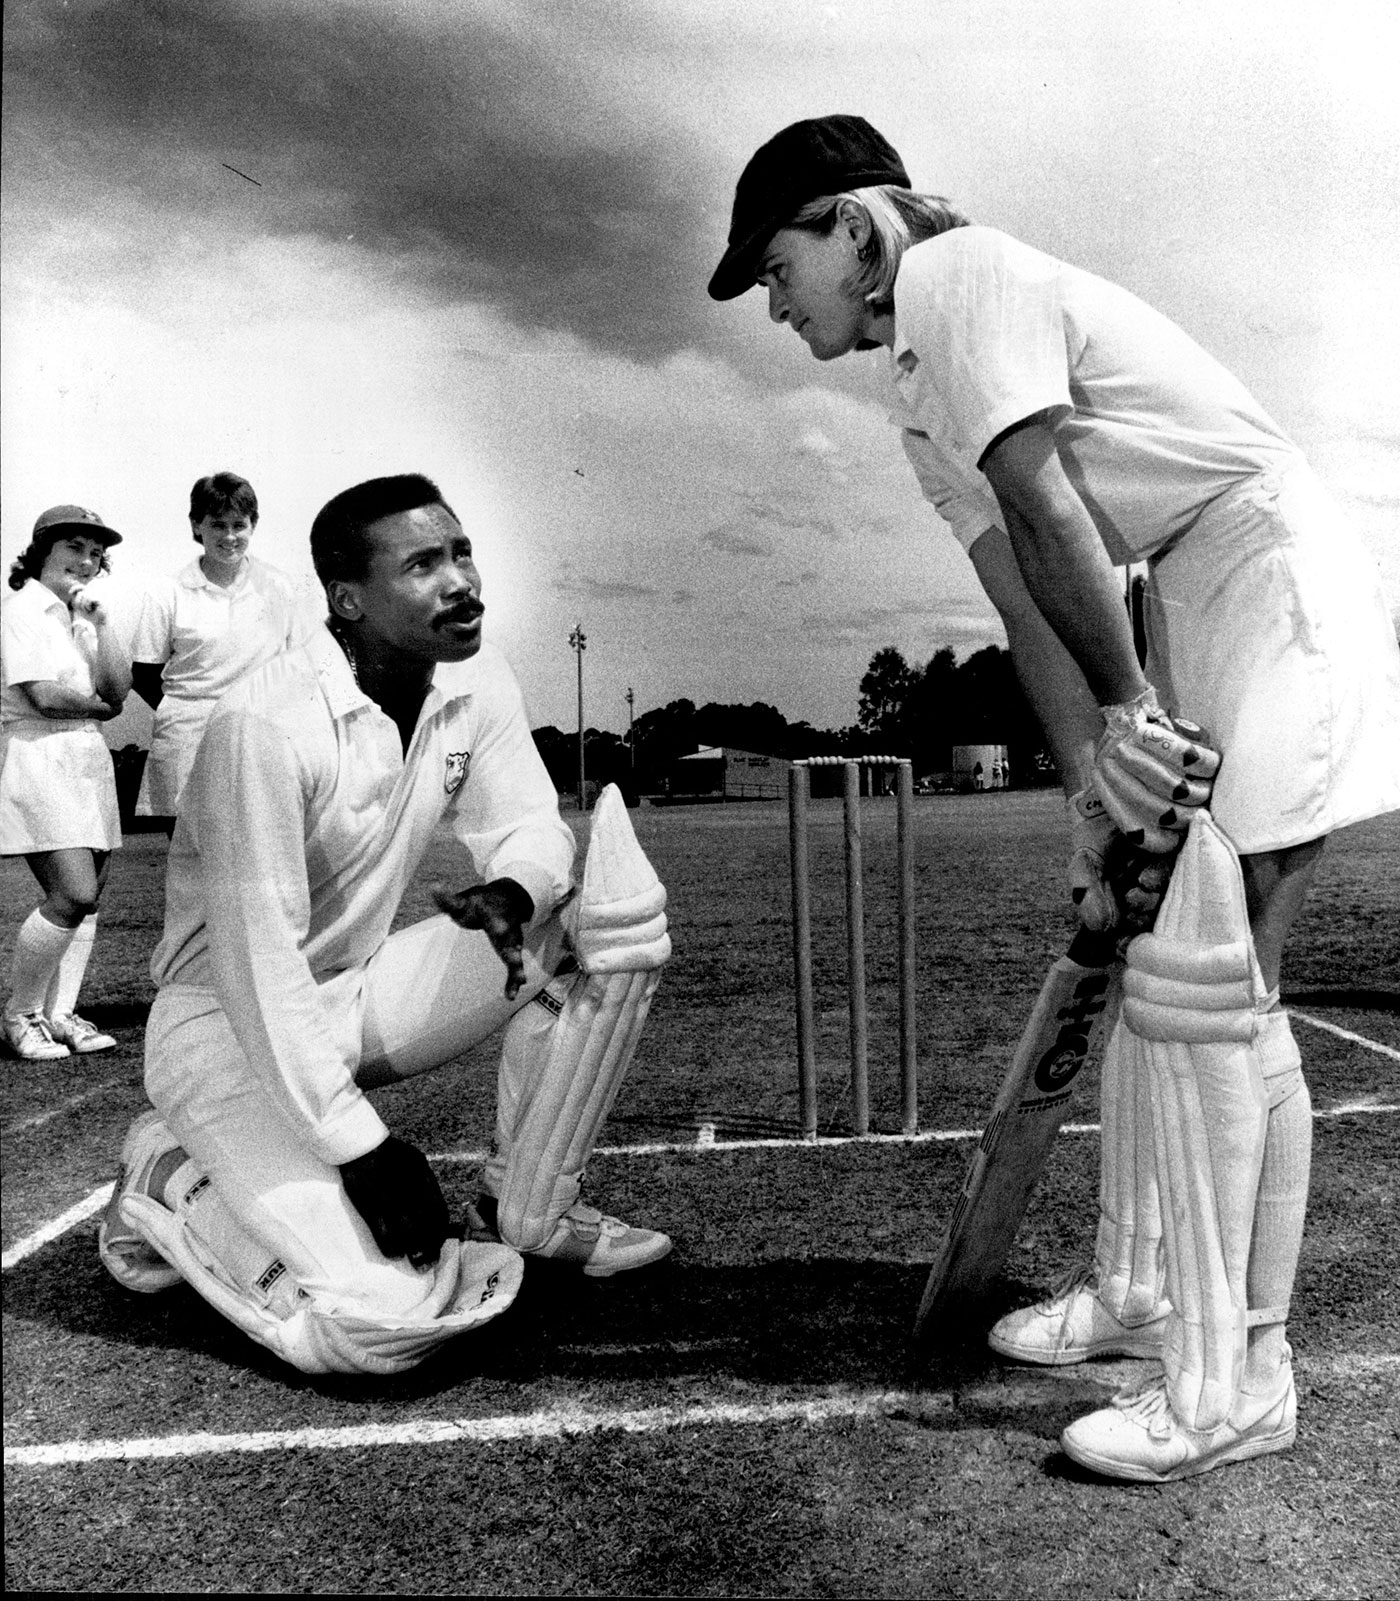 Greenidge passes on batting tips to New South Wales cricketers in 1989